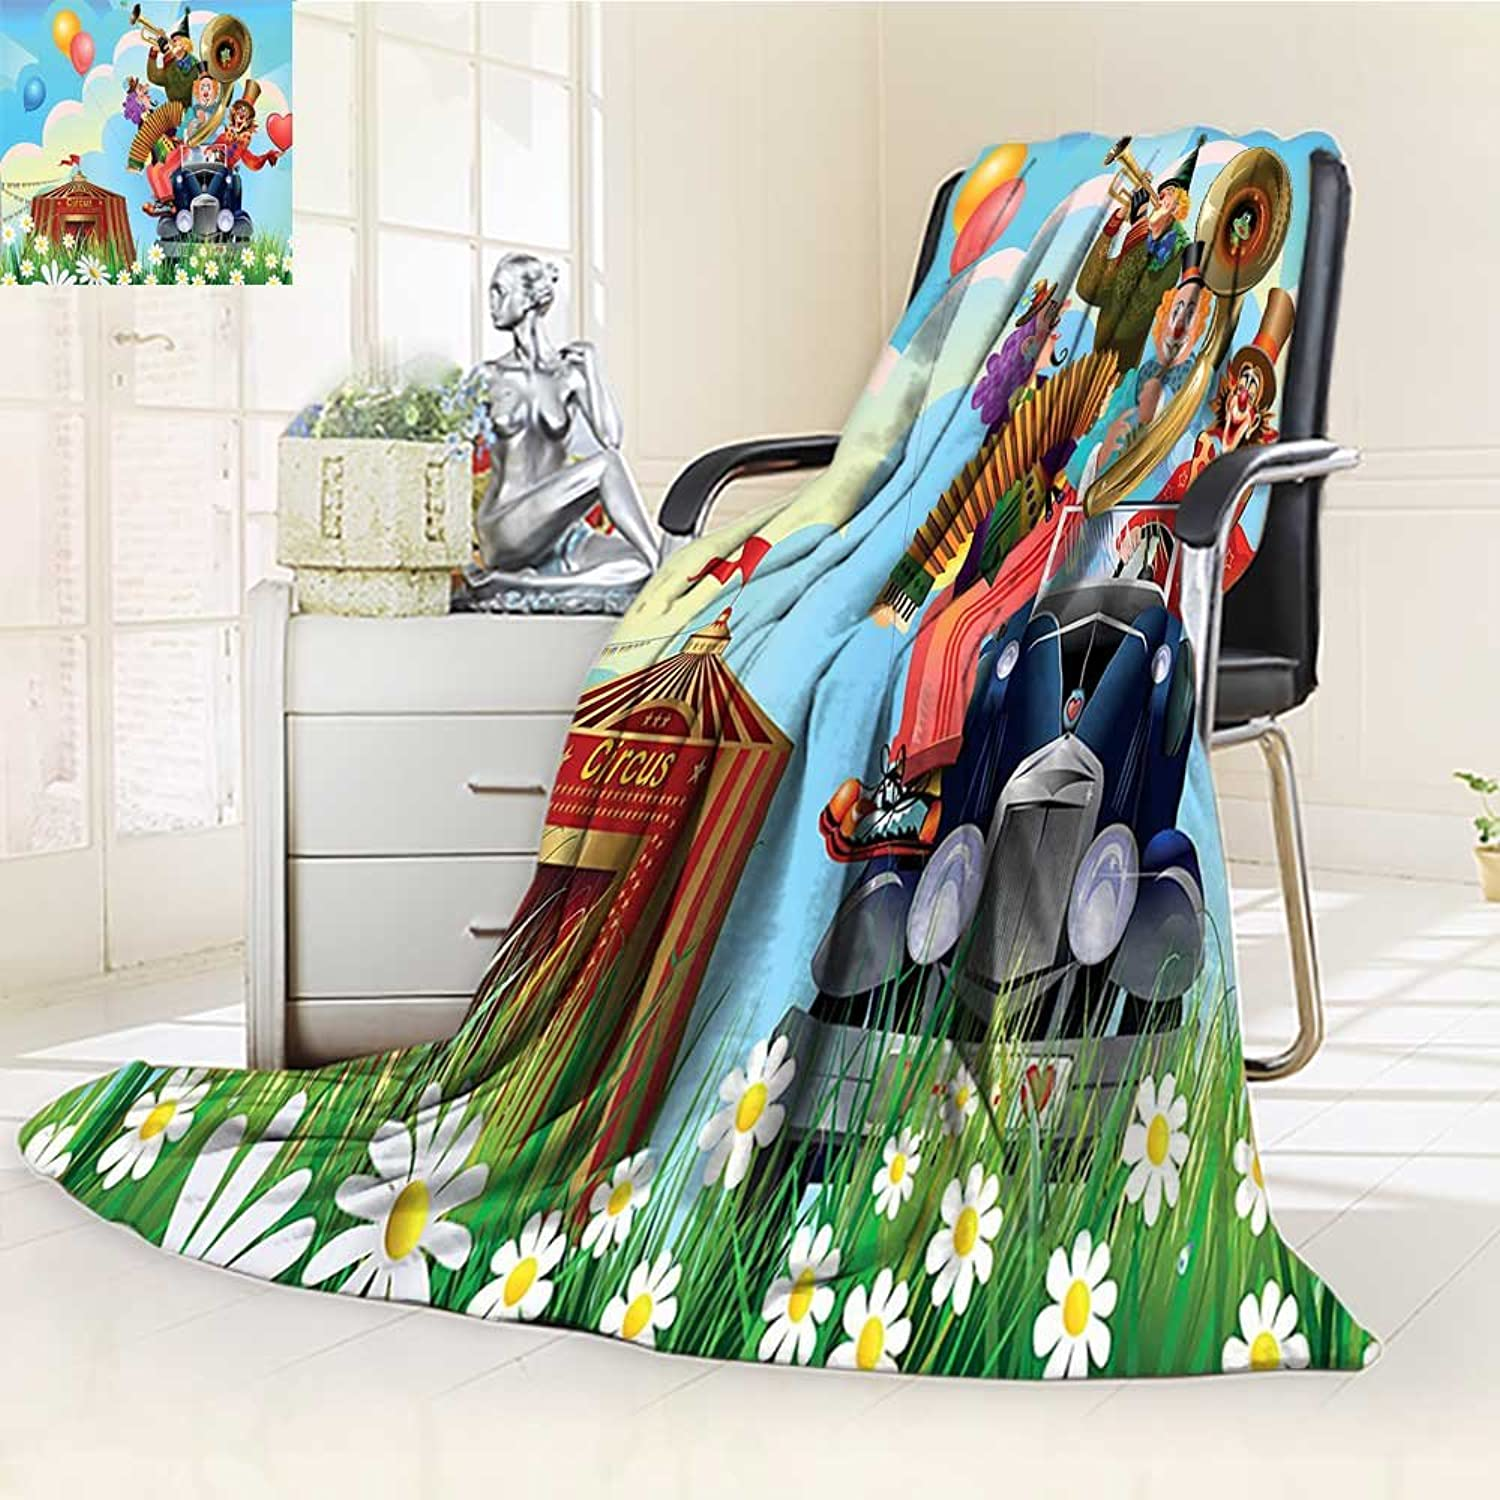 YOYI-HOME Digital Printing Duplex Printed Blanket Car and Circus Big Top Daisies Flowers Heart in Meadow Fun Design bluee Red Yellow Summer Quilt Comforter  W59 x H39.5